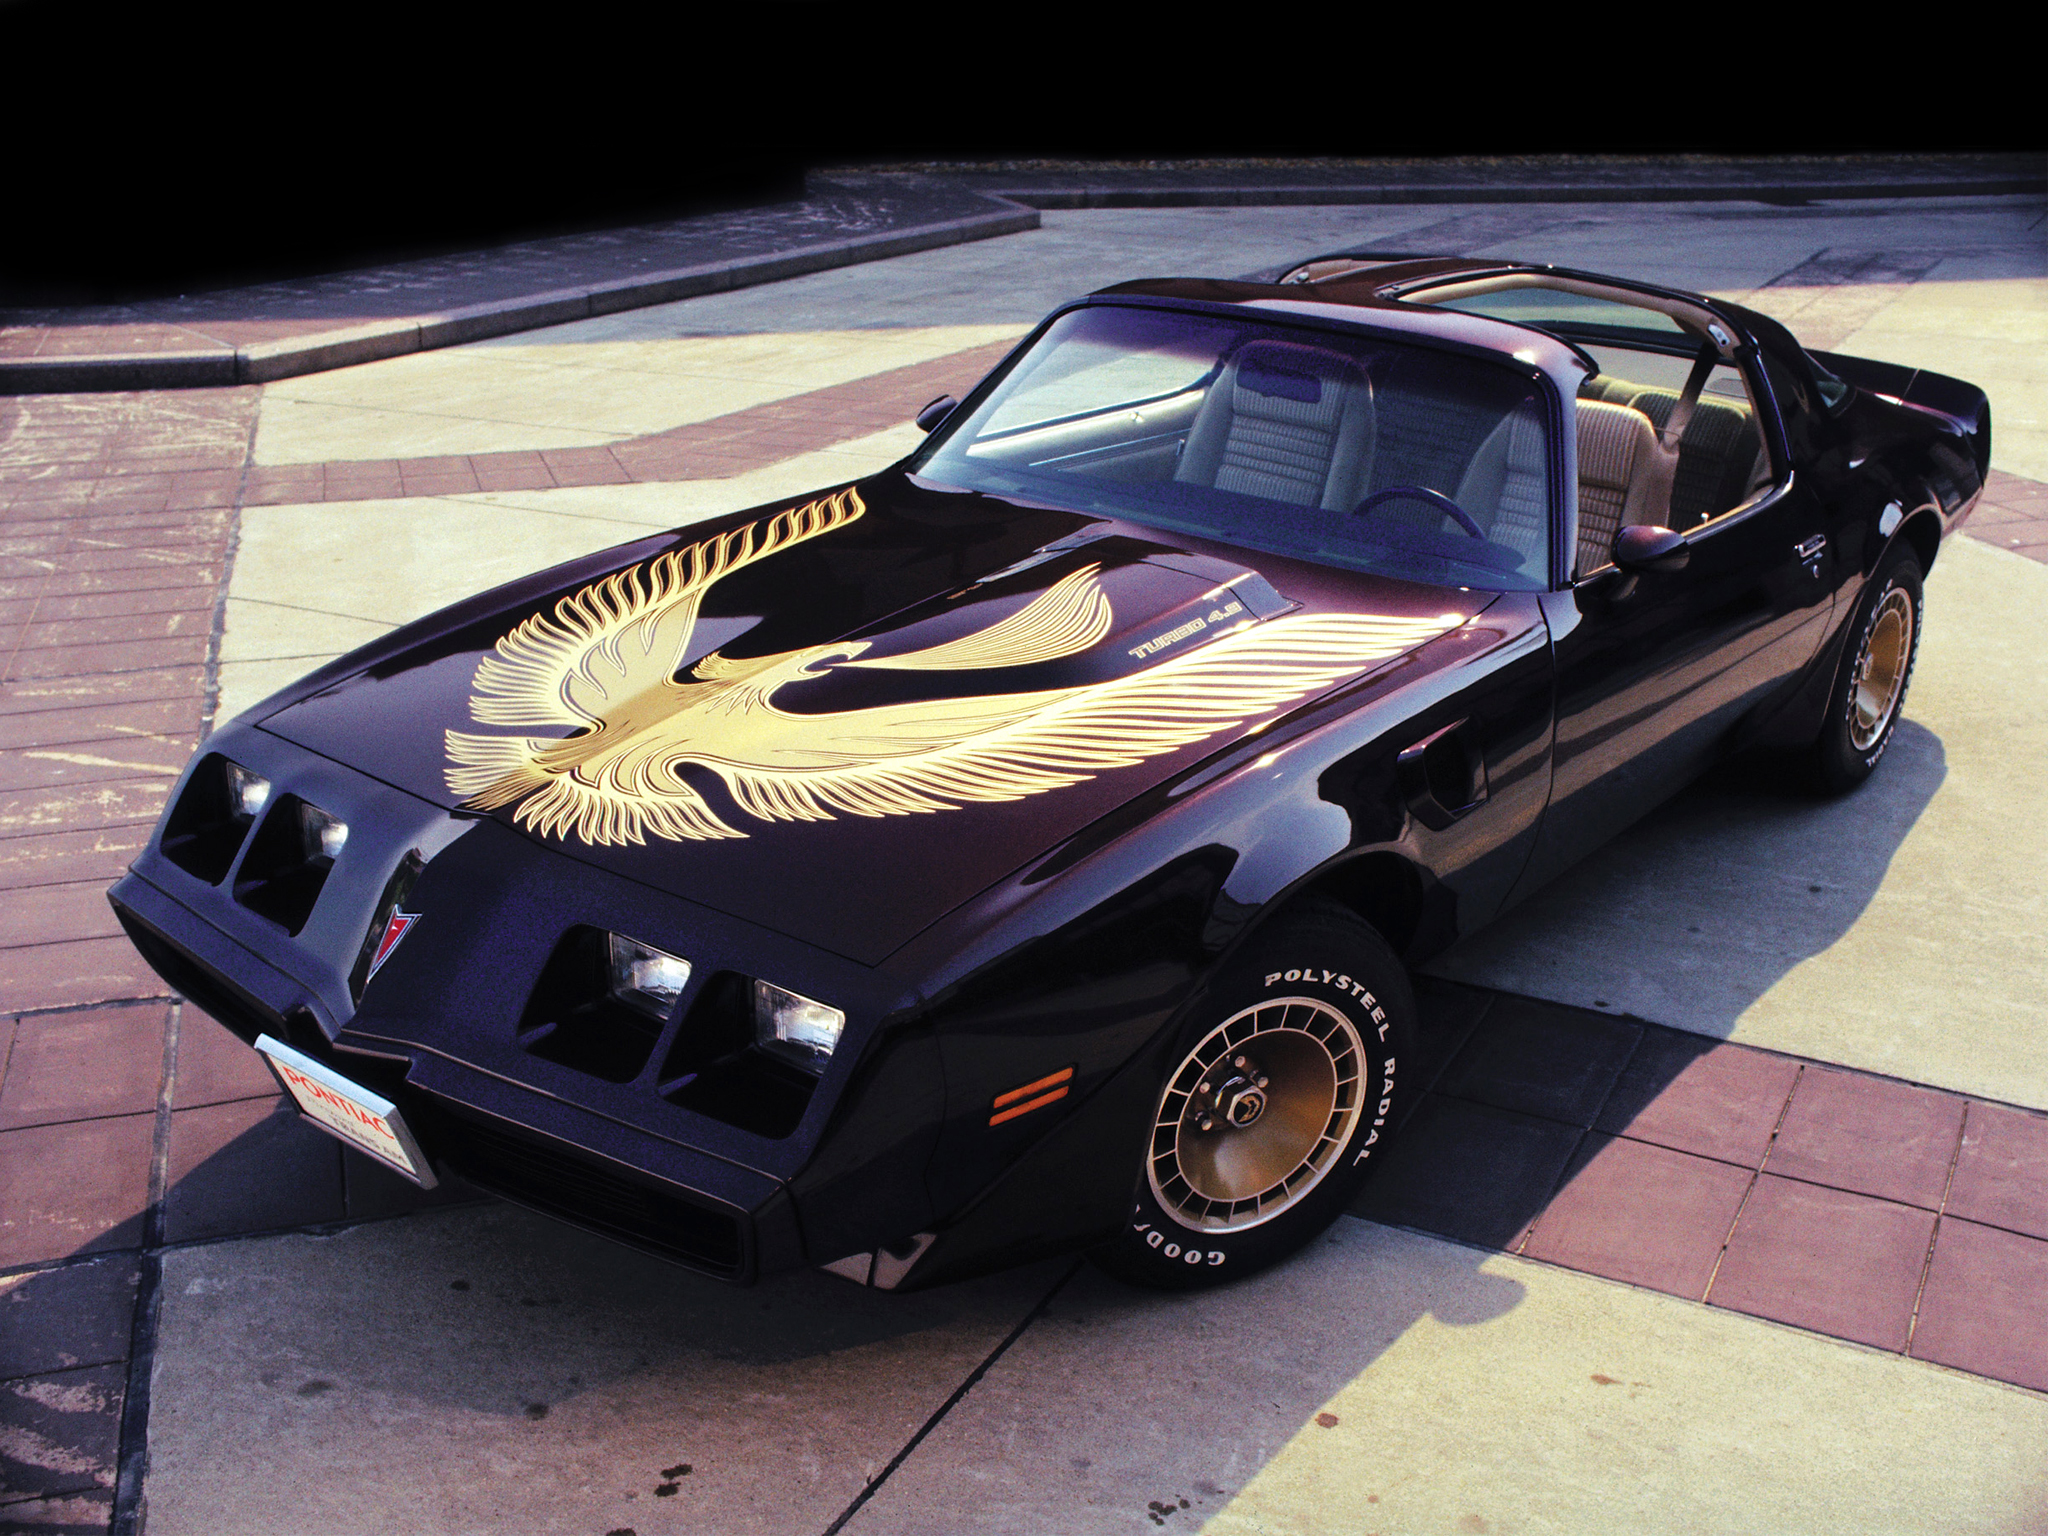 The vicious firework by Pontiac Firebird #4